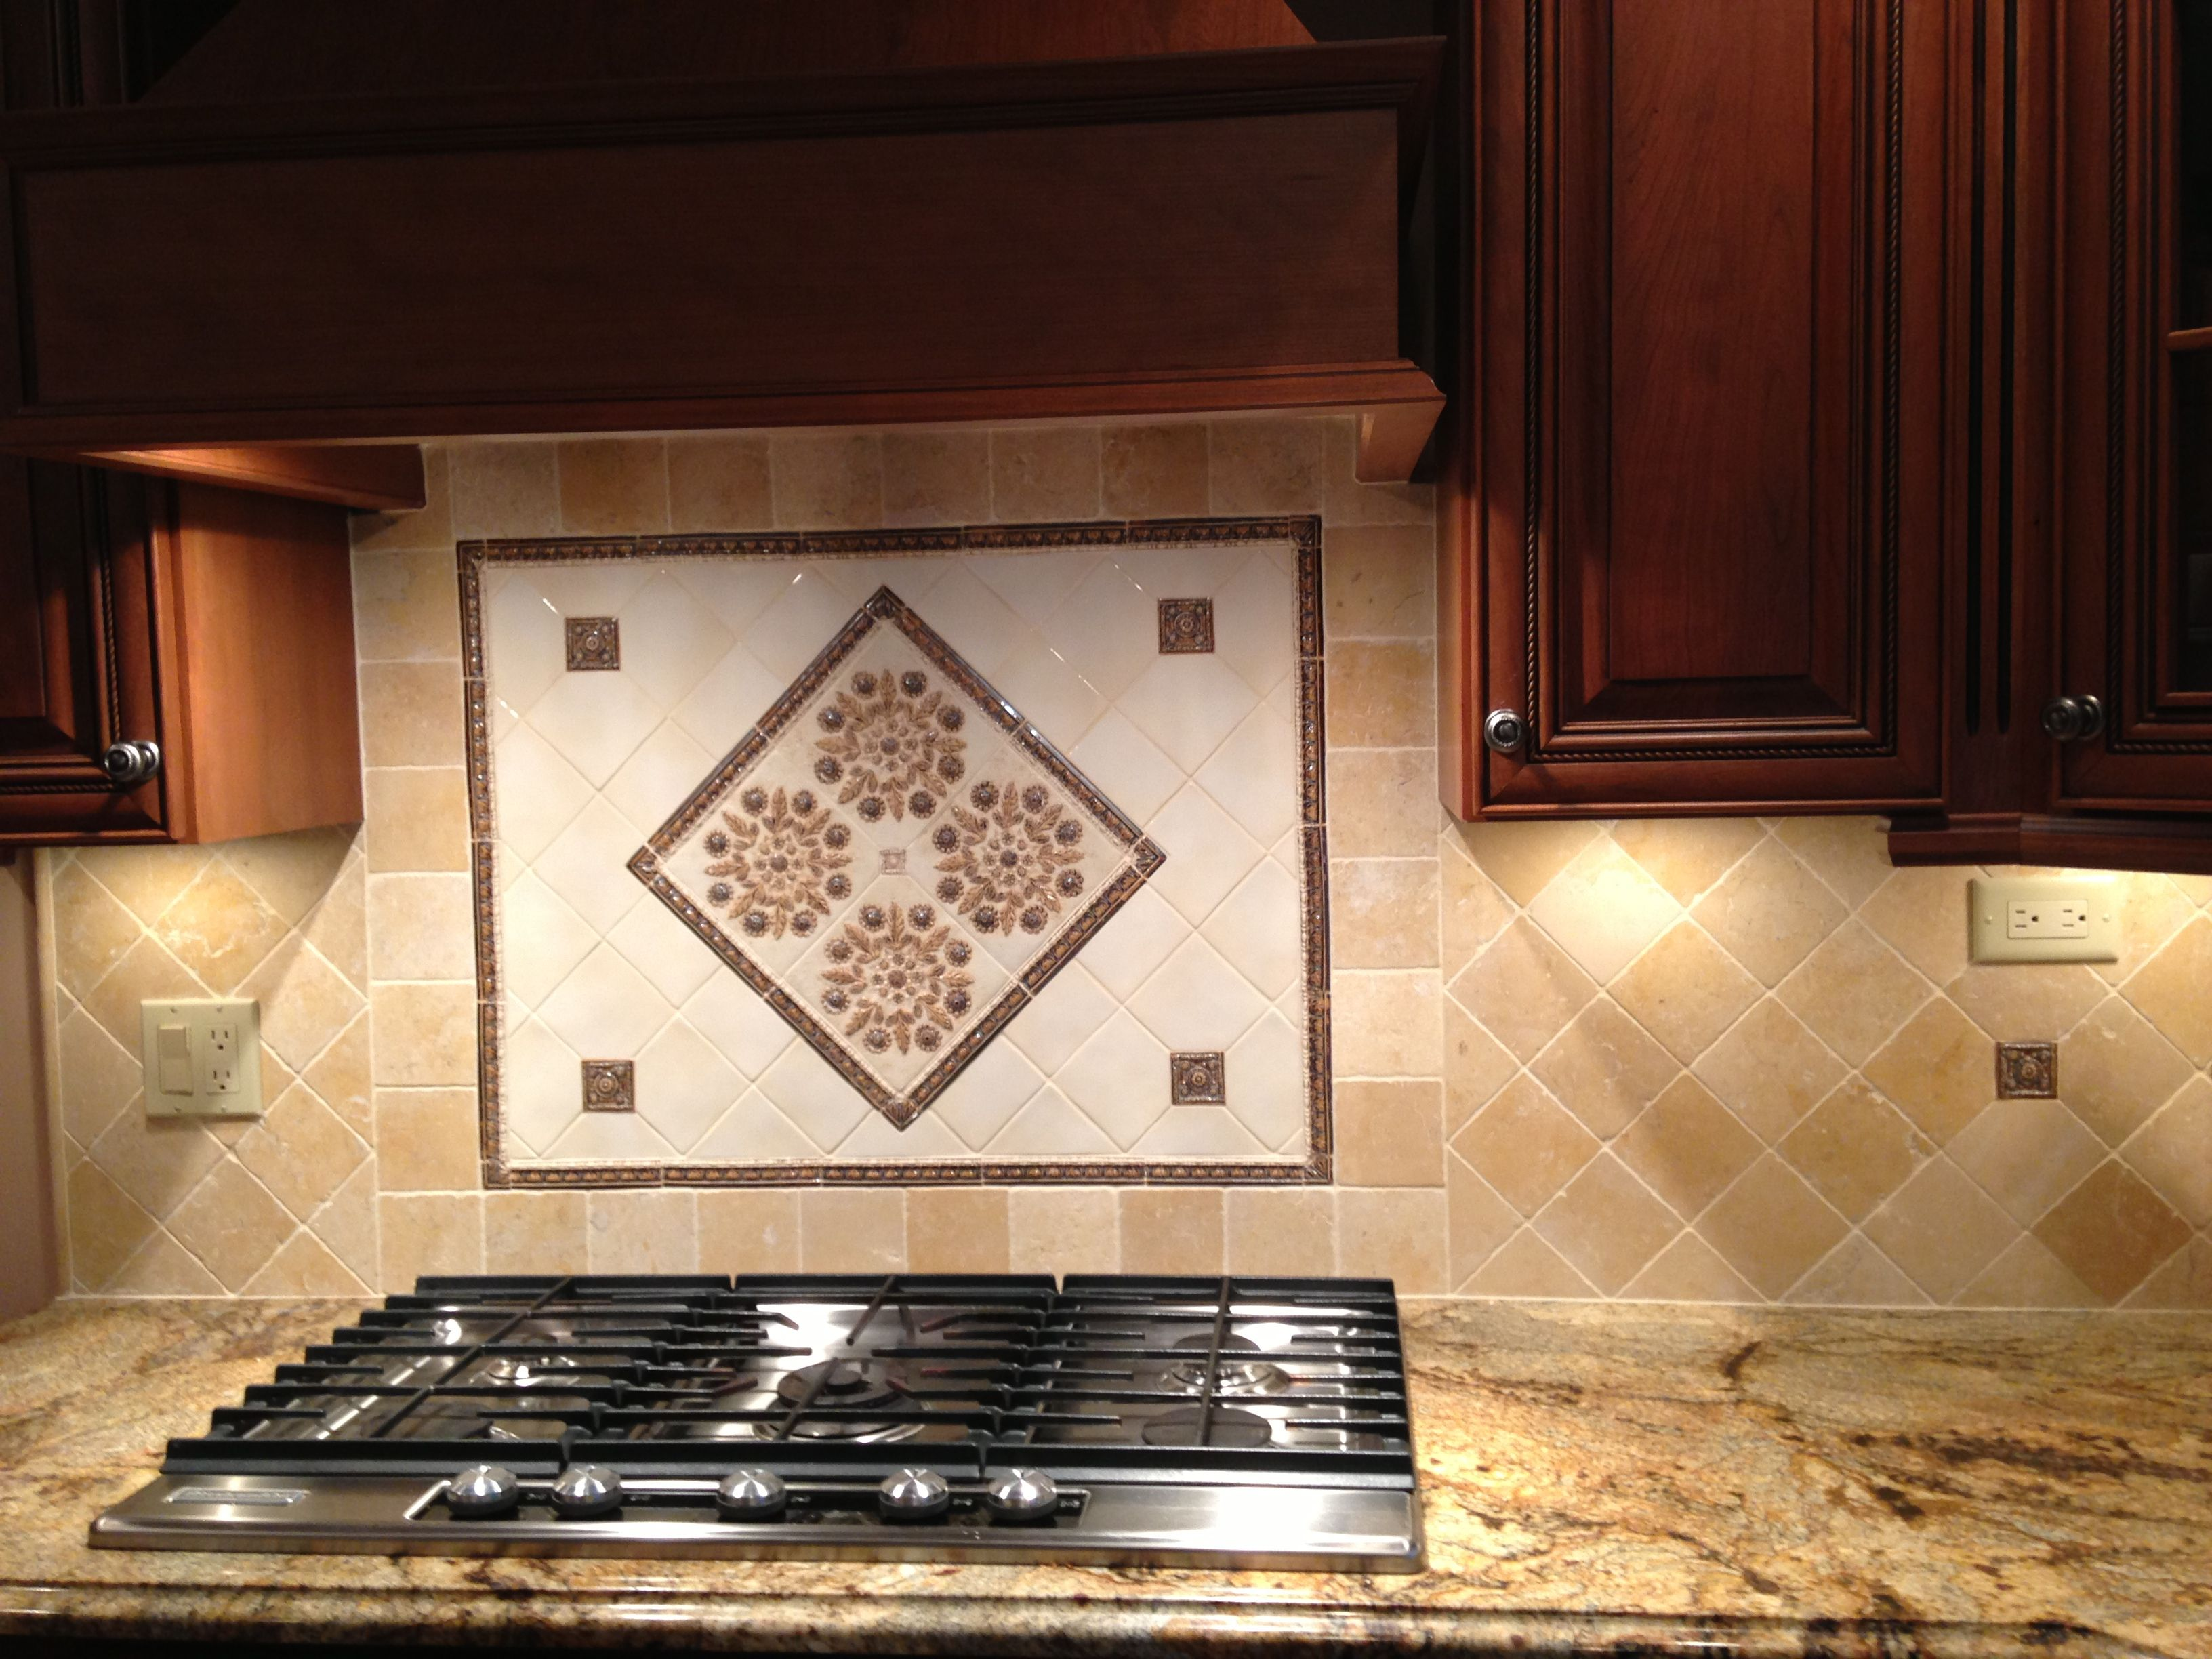 - Handmade Tile With Jerusalem Gold StoneI Don't Like The Center